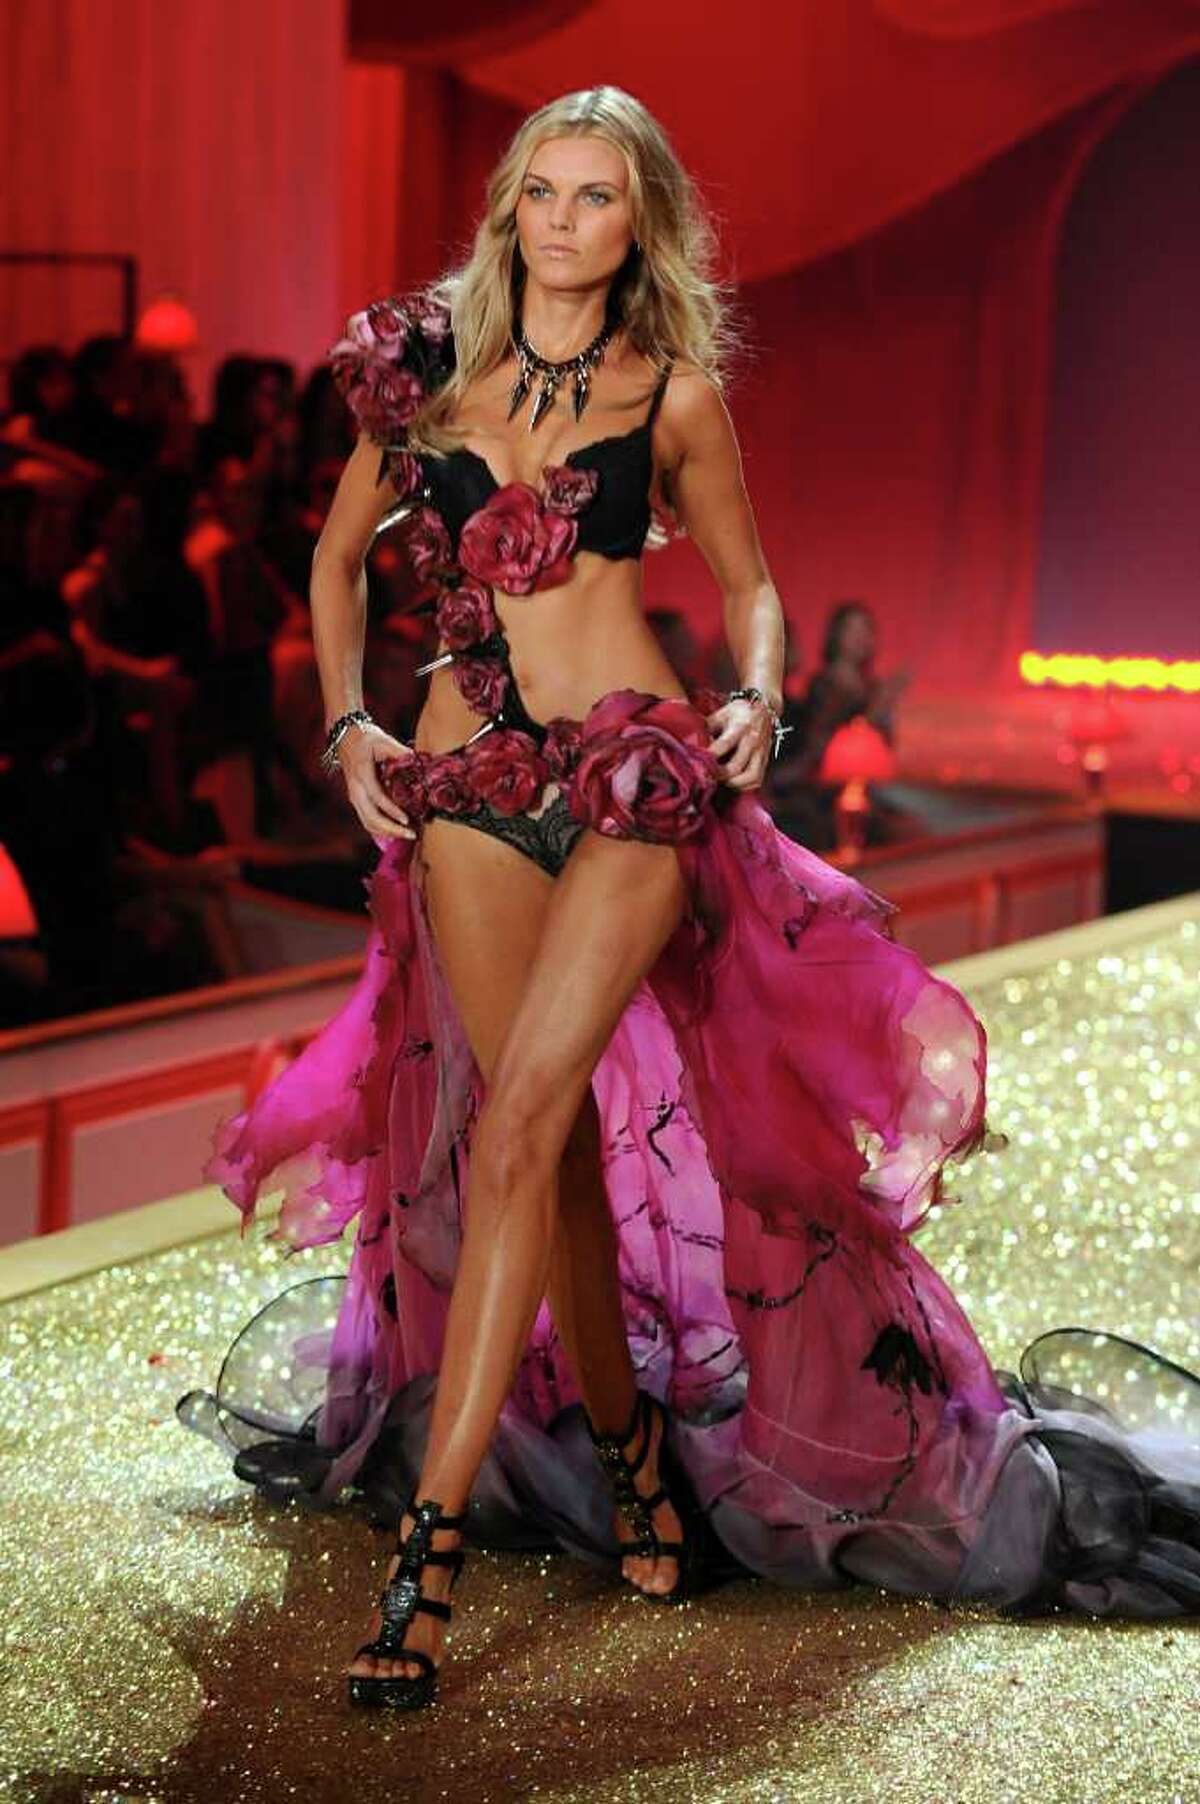 NEW YORK - NOVEMBER 10: Model Maryna Linchuk walks the runway during the 2010 Victoria's Secret Fashion Show at the Lexington Avenue Armory on November 10, 2010 in New York City. (Photo by Theo Wargo/Getty Images) *** Local Caption *** Maryna Linchuk